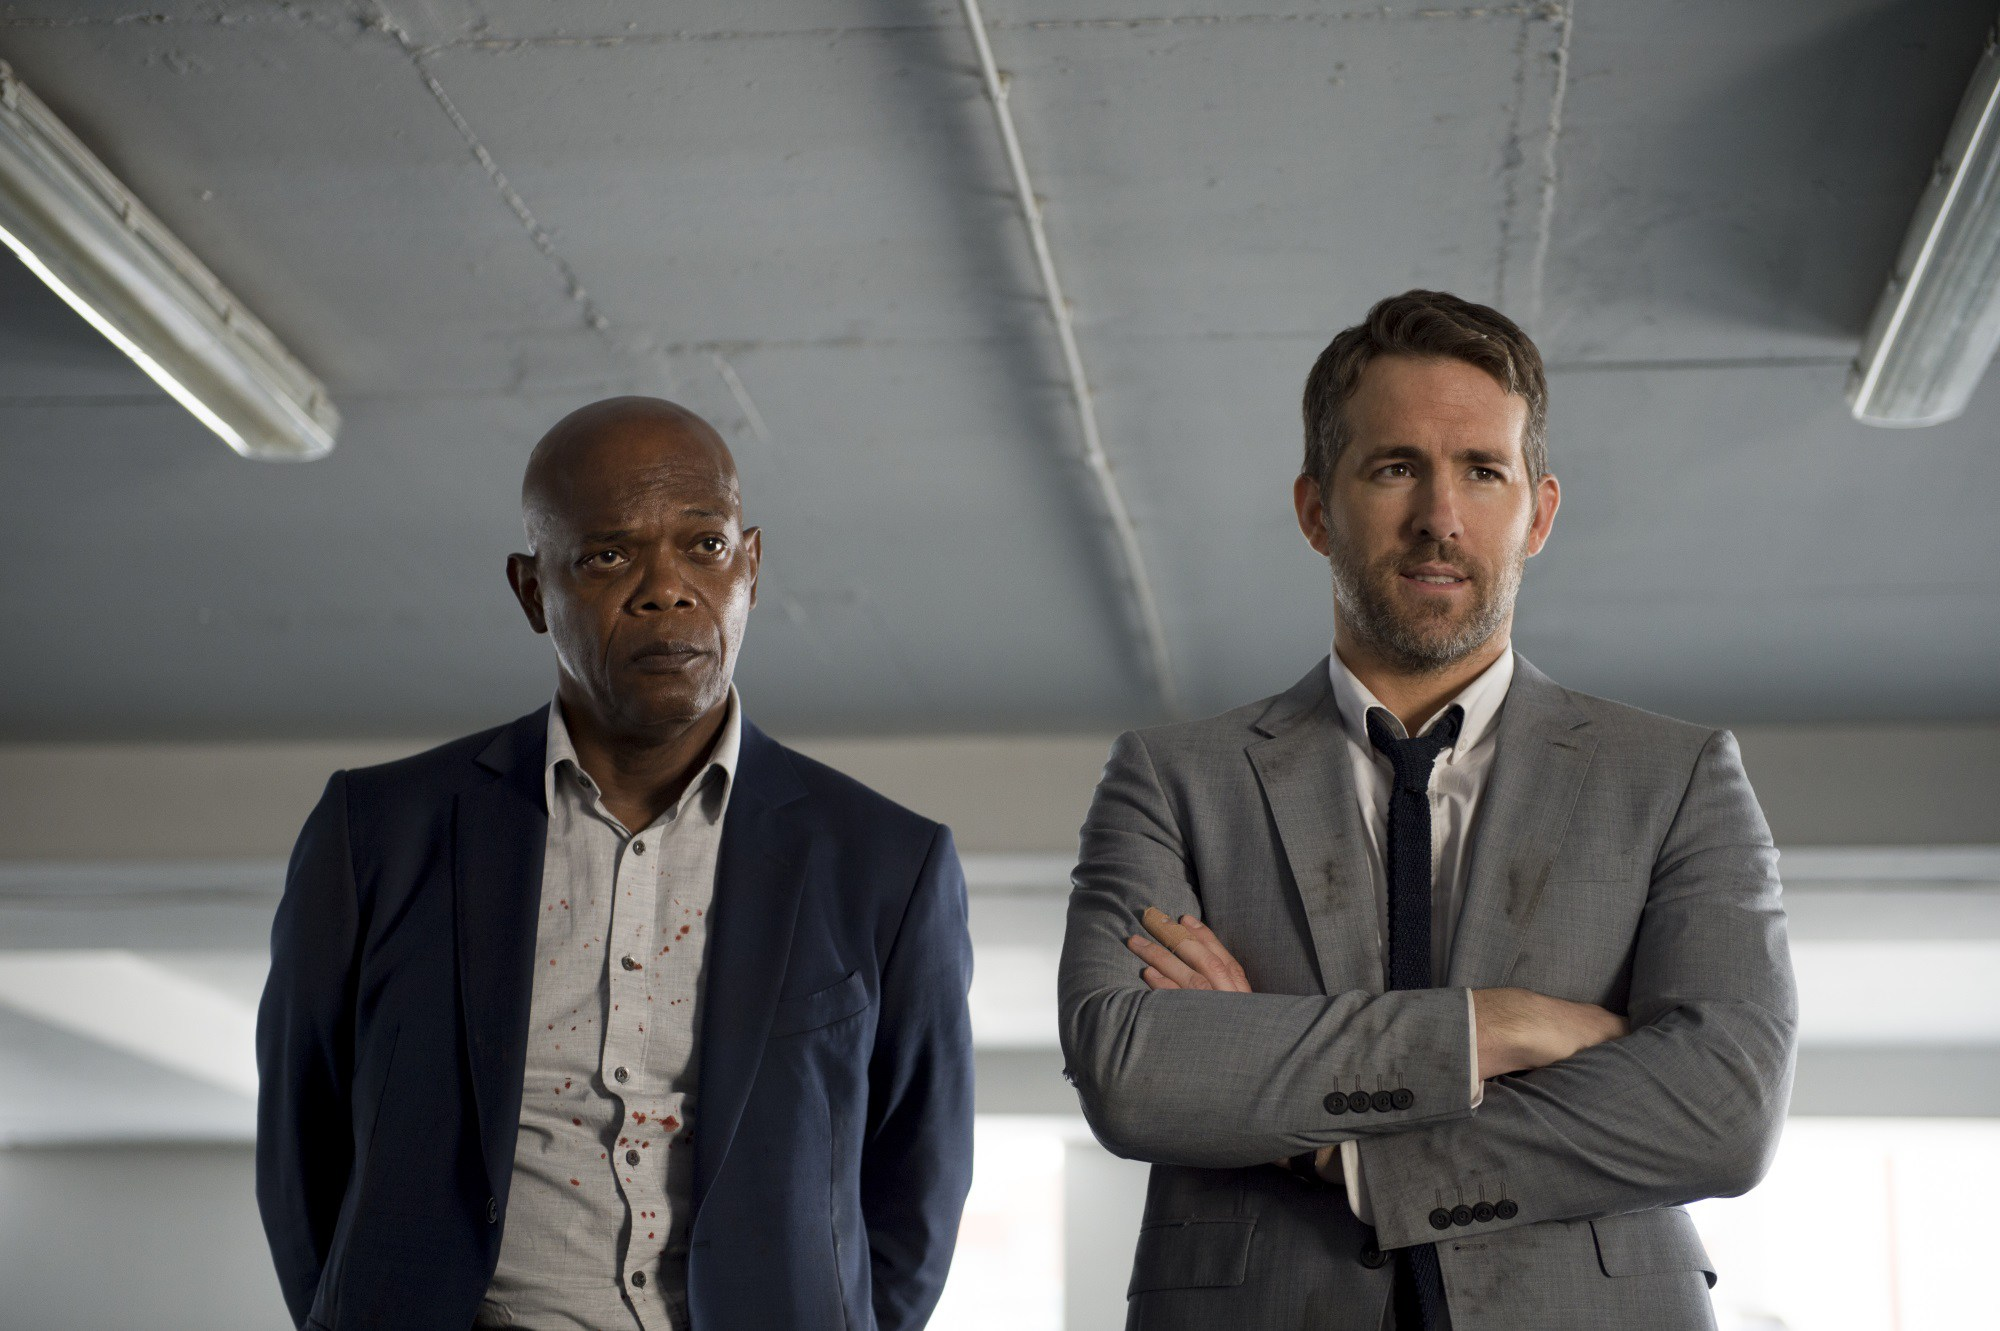 The Hitman's Bodyguard has all the makings of a fun summer hit. What makes it so dull?